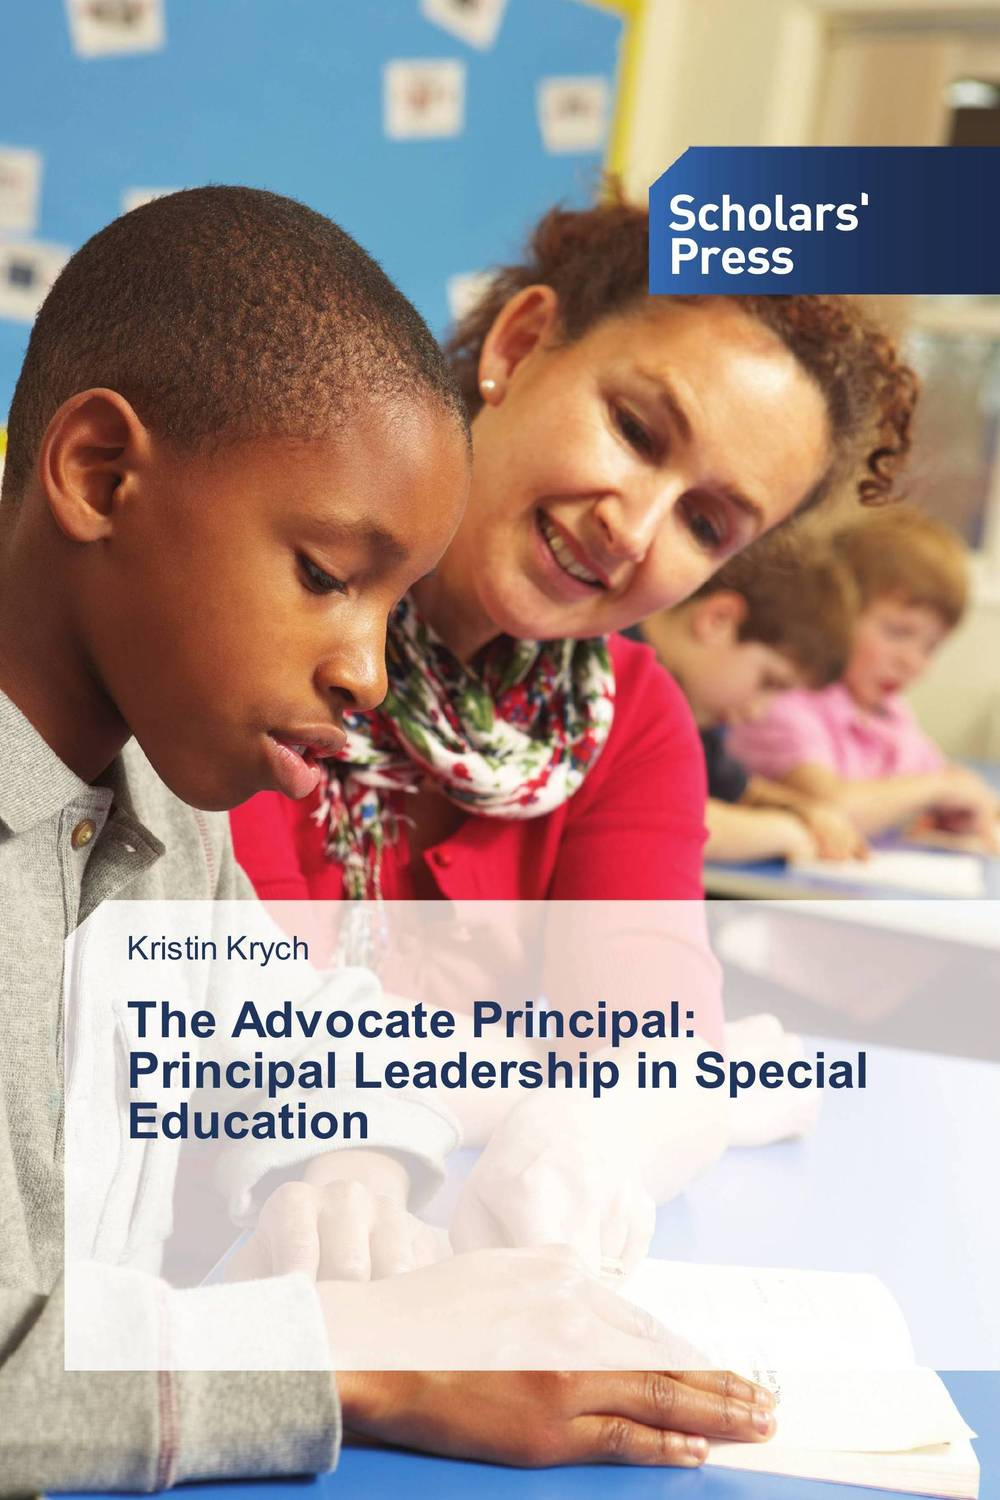 The Advocate Principal: Principal Leadership in Special Education санки надувные ватрушка snowdrifts 110см с насосом